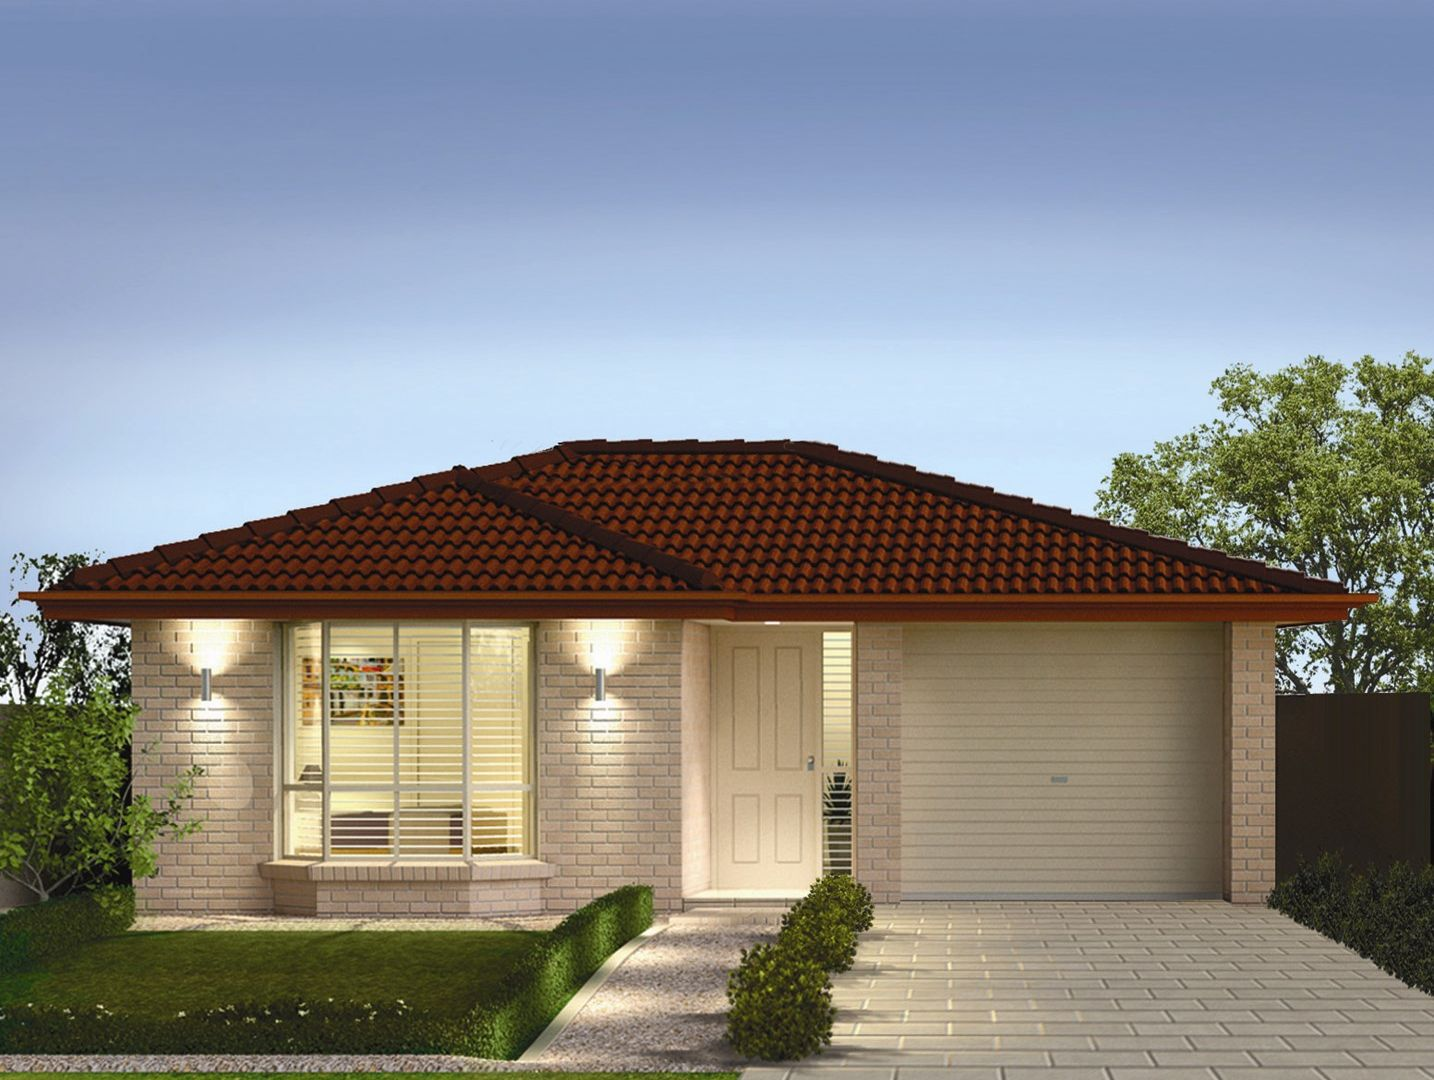 Lot 4 Russell Row, Paralowie SA 5108, Image 1